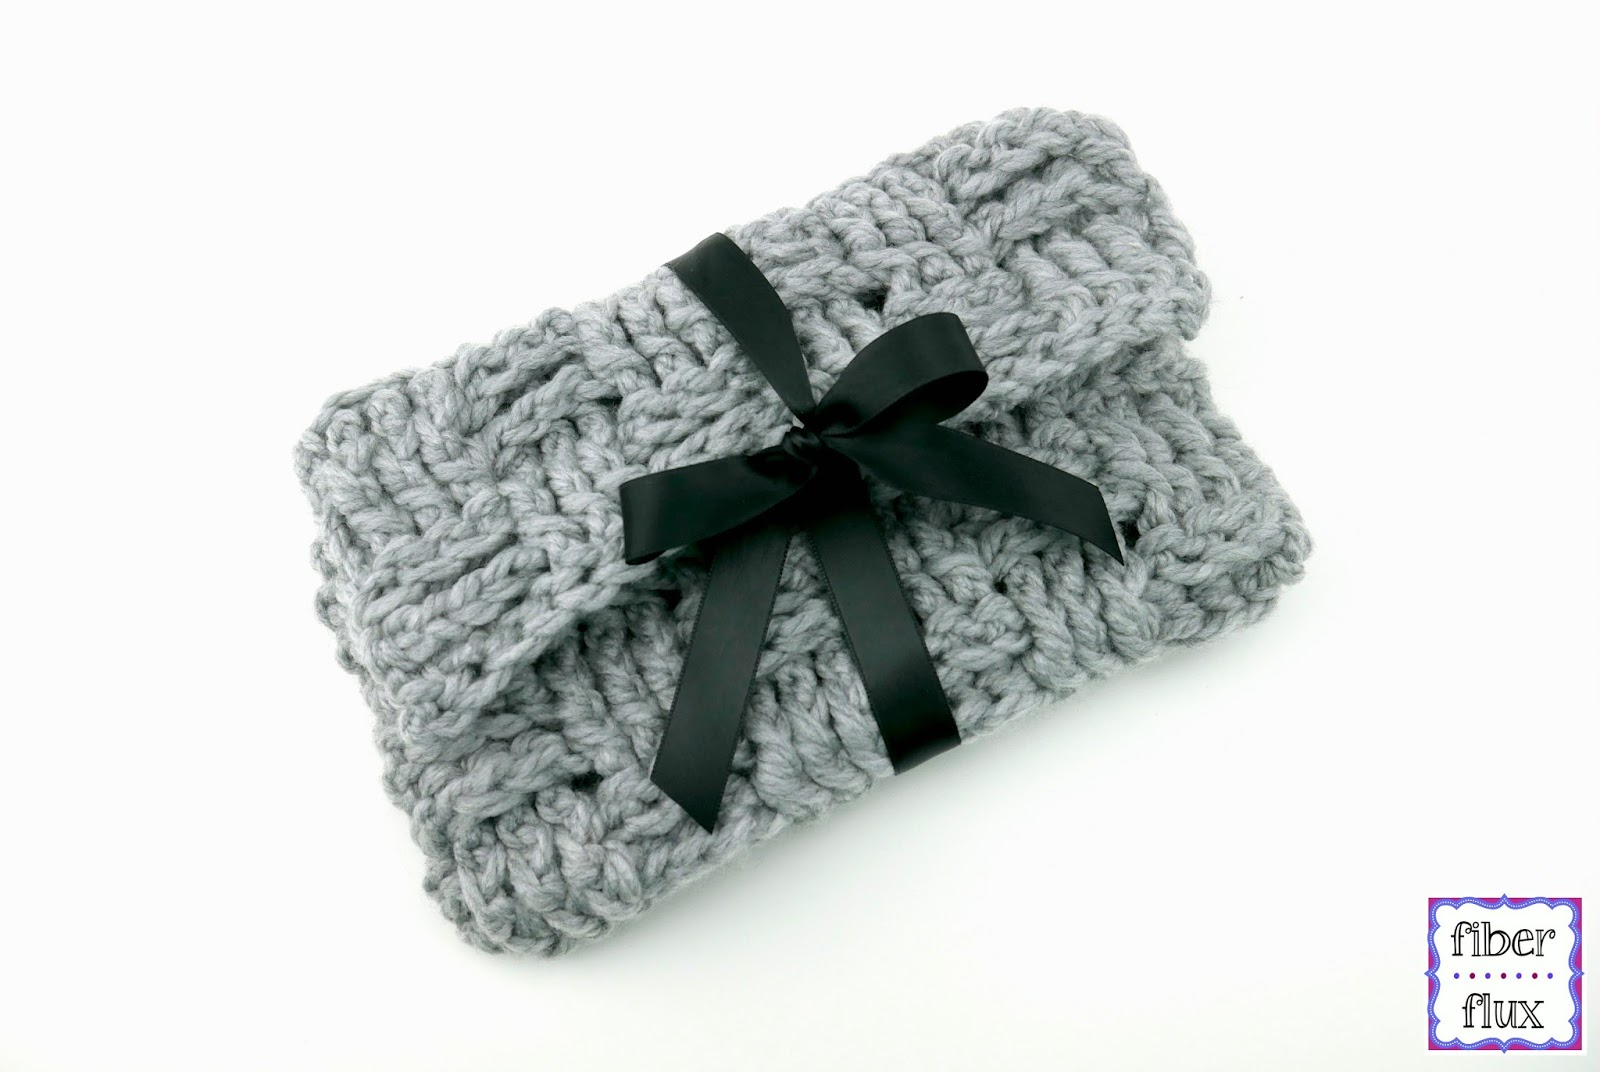 Free Crochet Clutch Pattern : Fiber Flux: Free Crochet Pattern...Woven Ribbon Clutch!